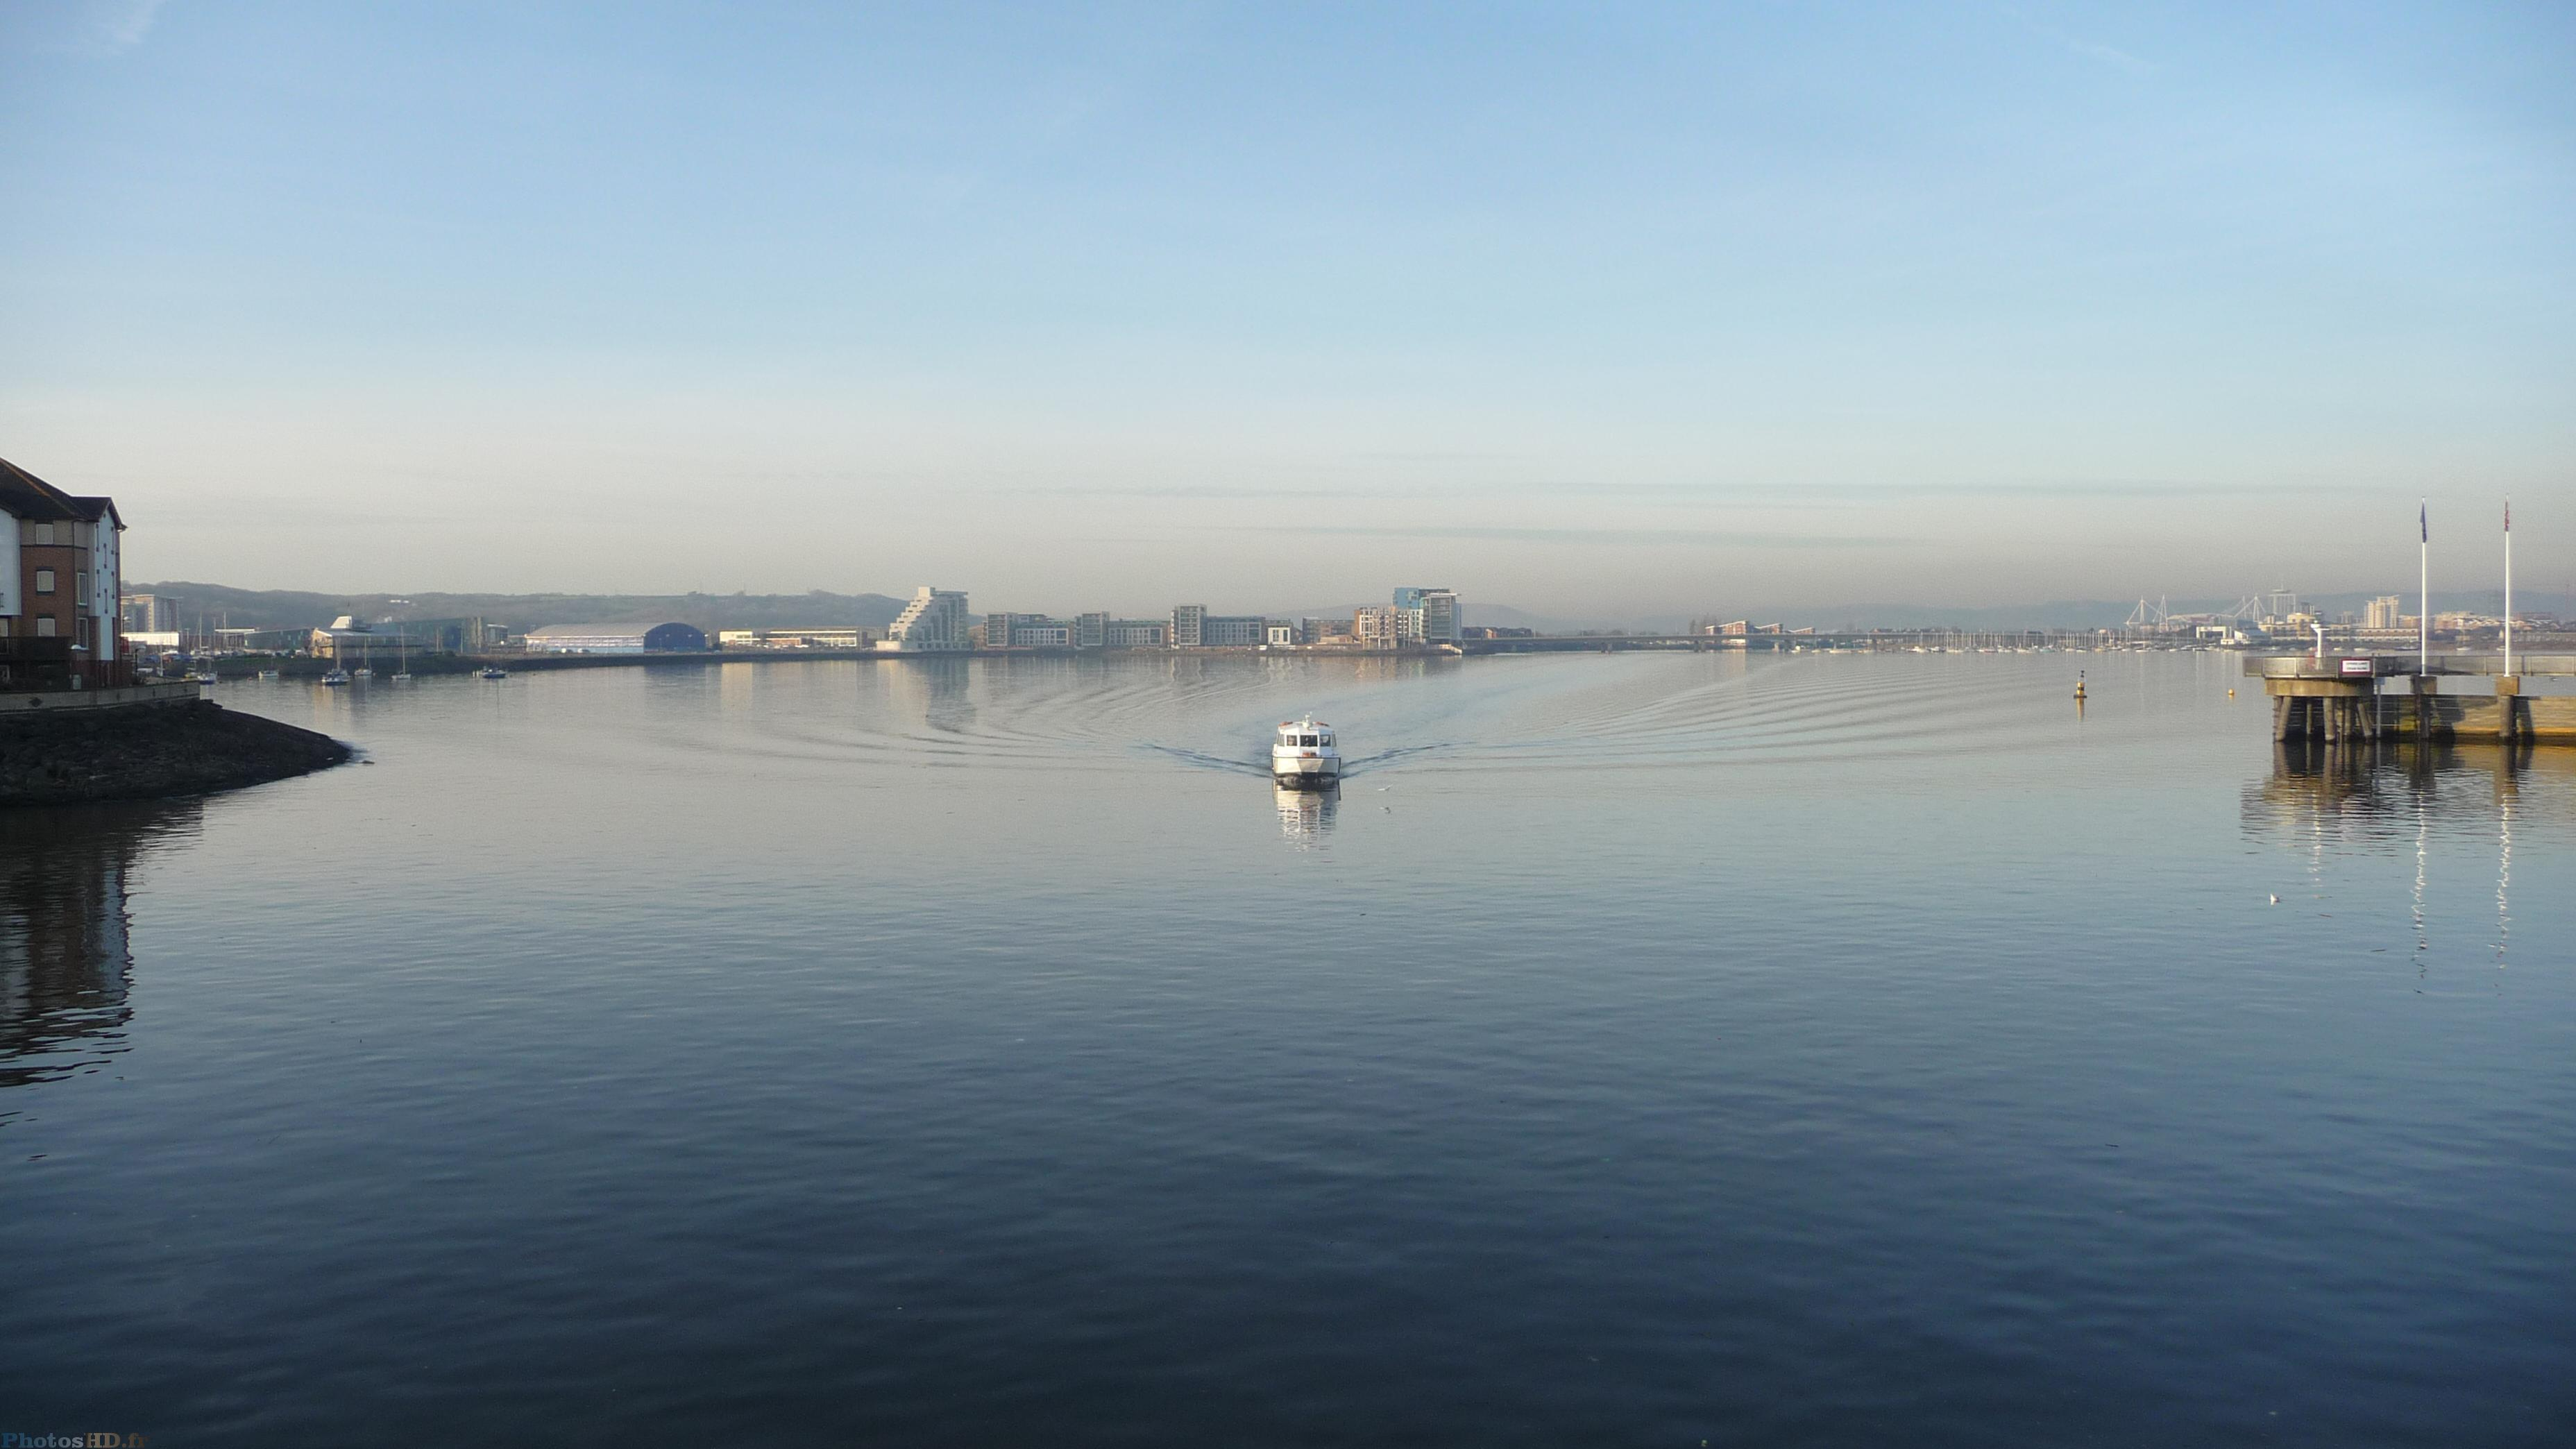 The Cardiff Bay